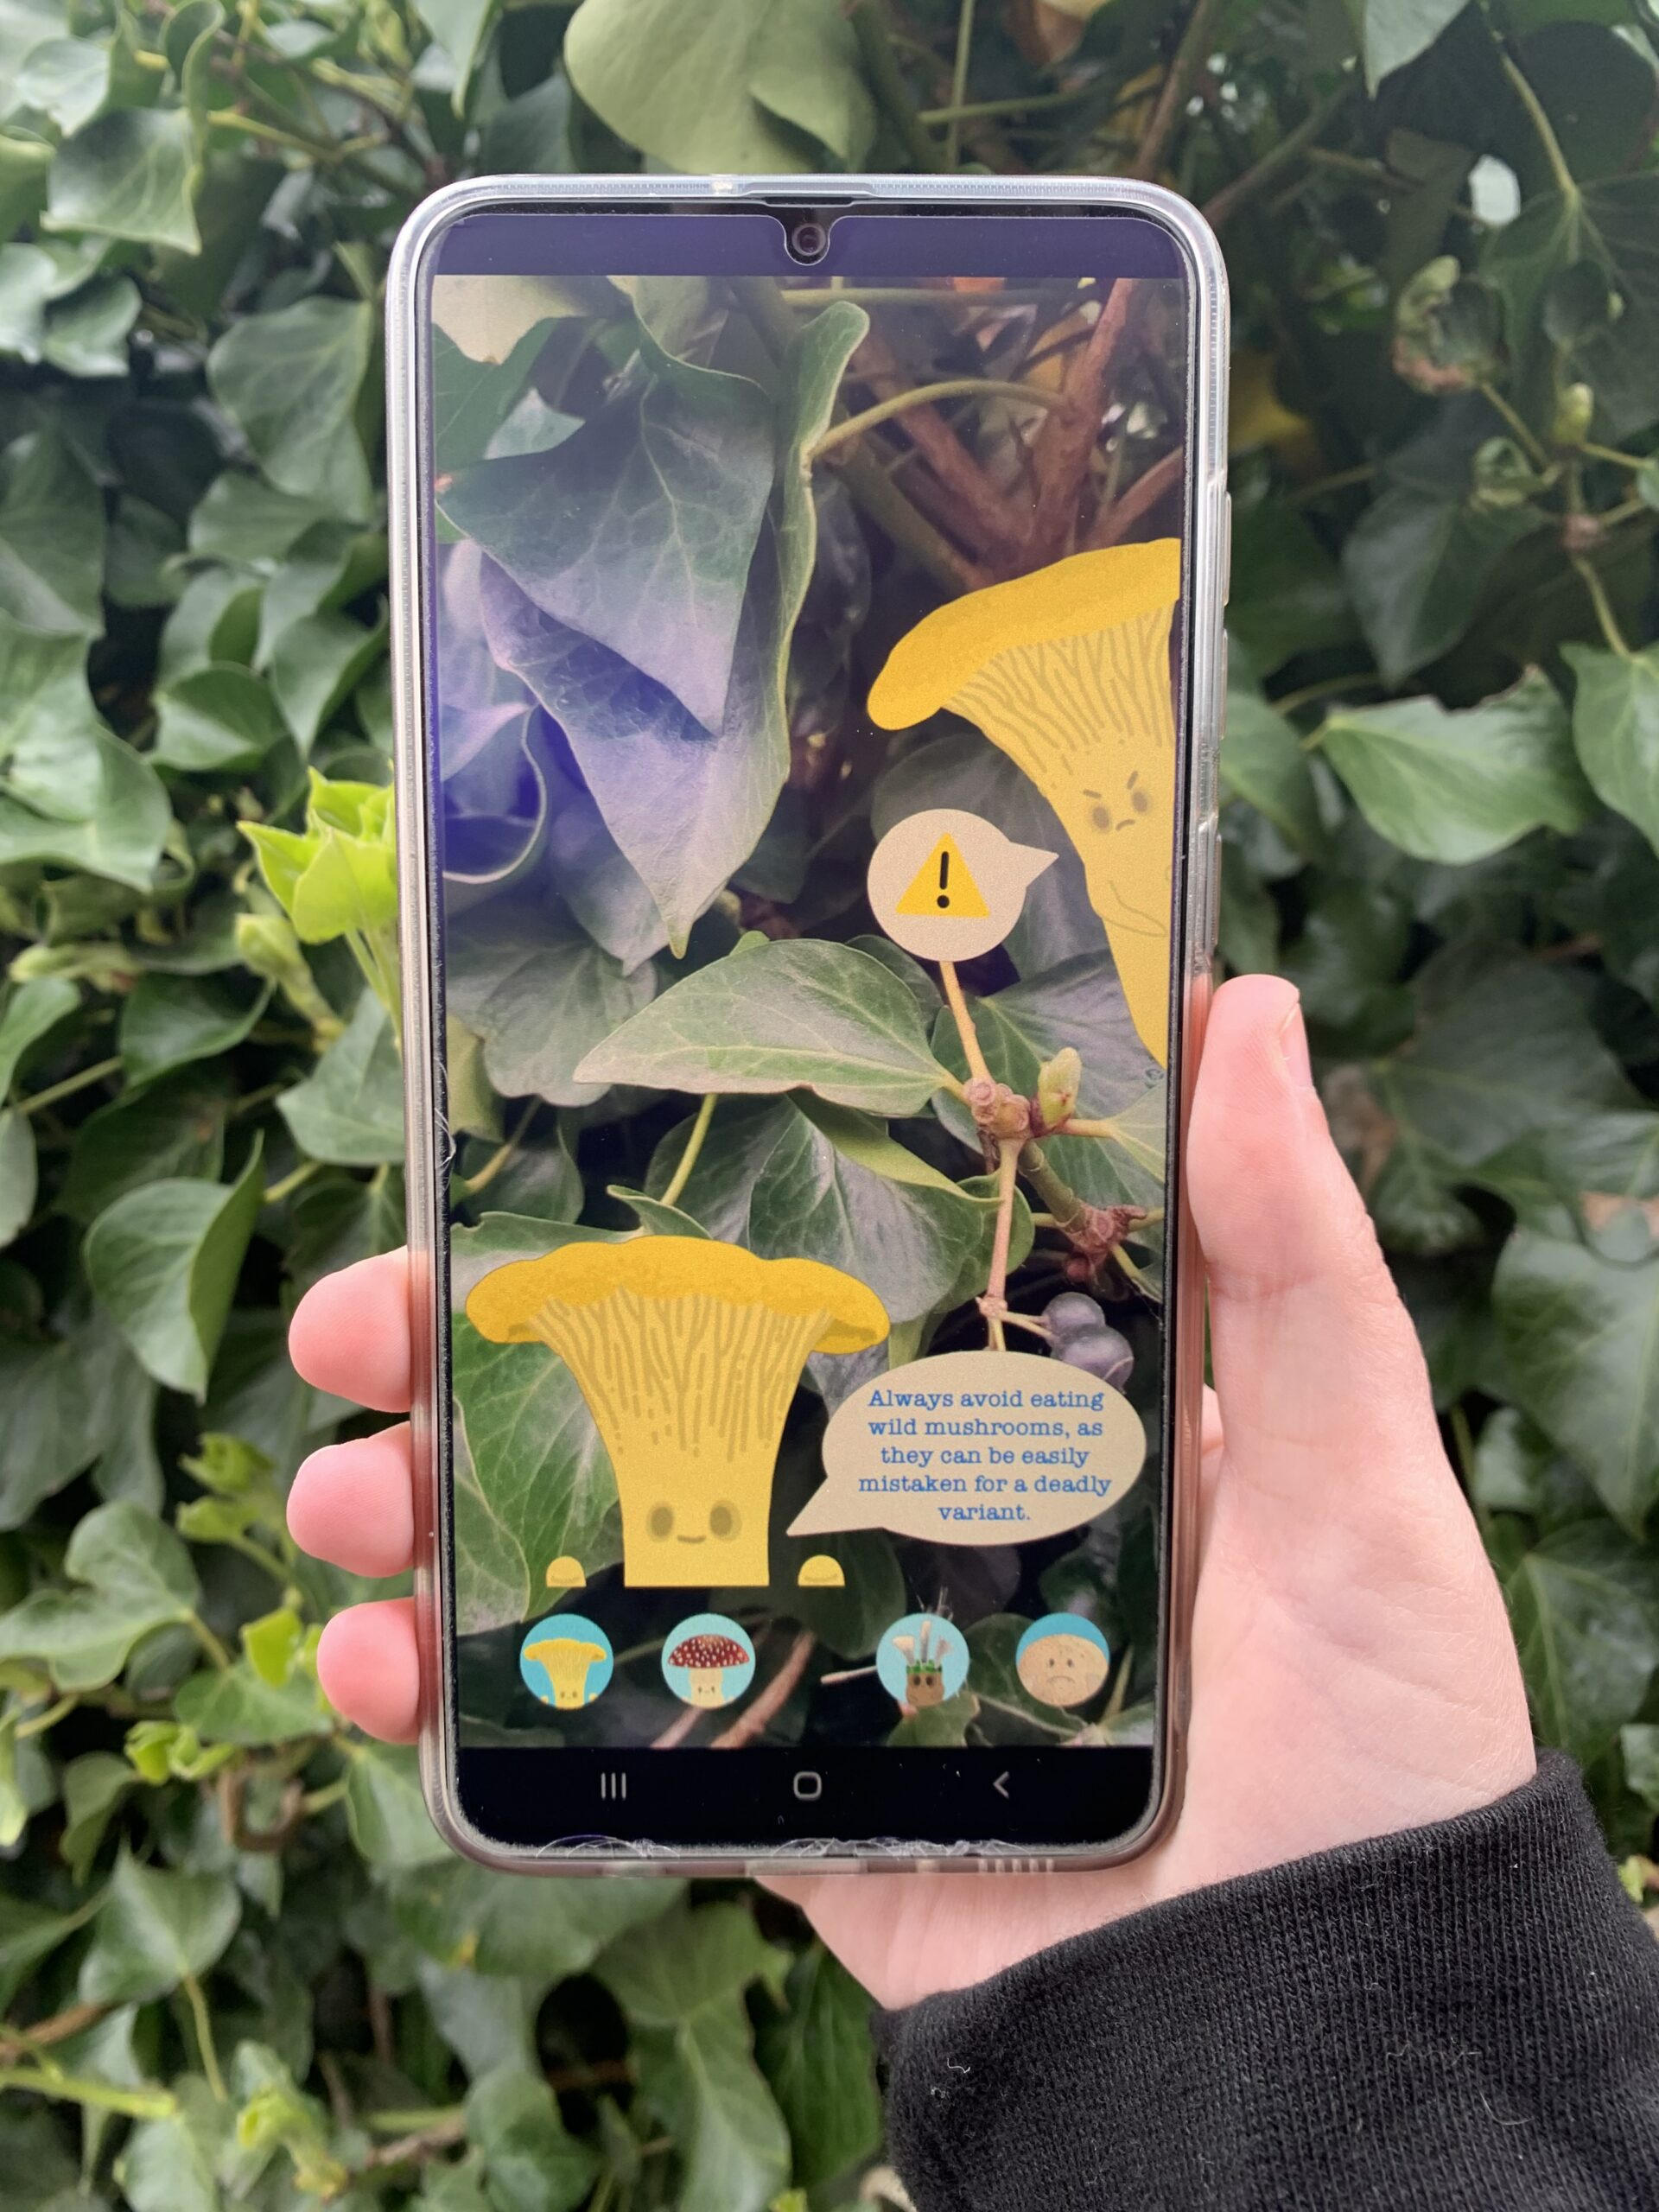 A phone being held with the screen demonstrating app with mushroom figures sharing a fact saying 'Always avoid eating wild mushrooms, as they can be easily mistaken for a deadly variant.'